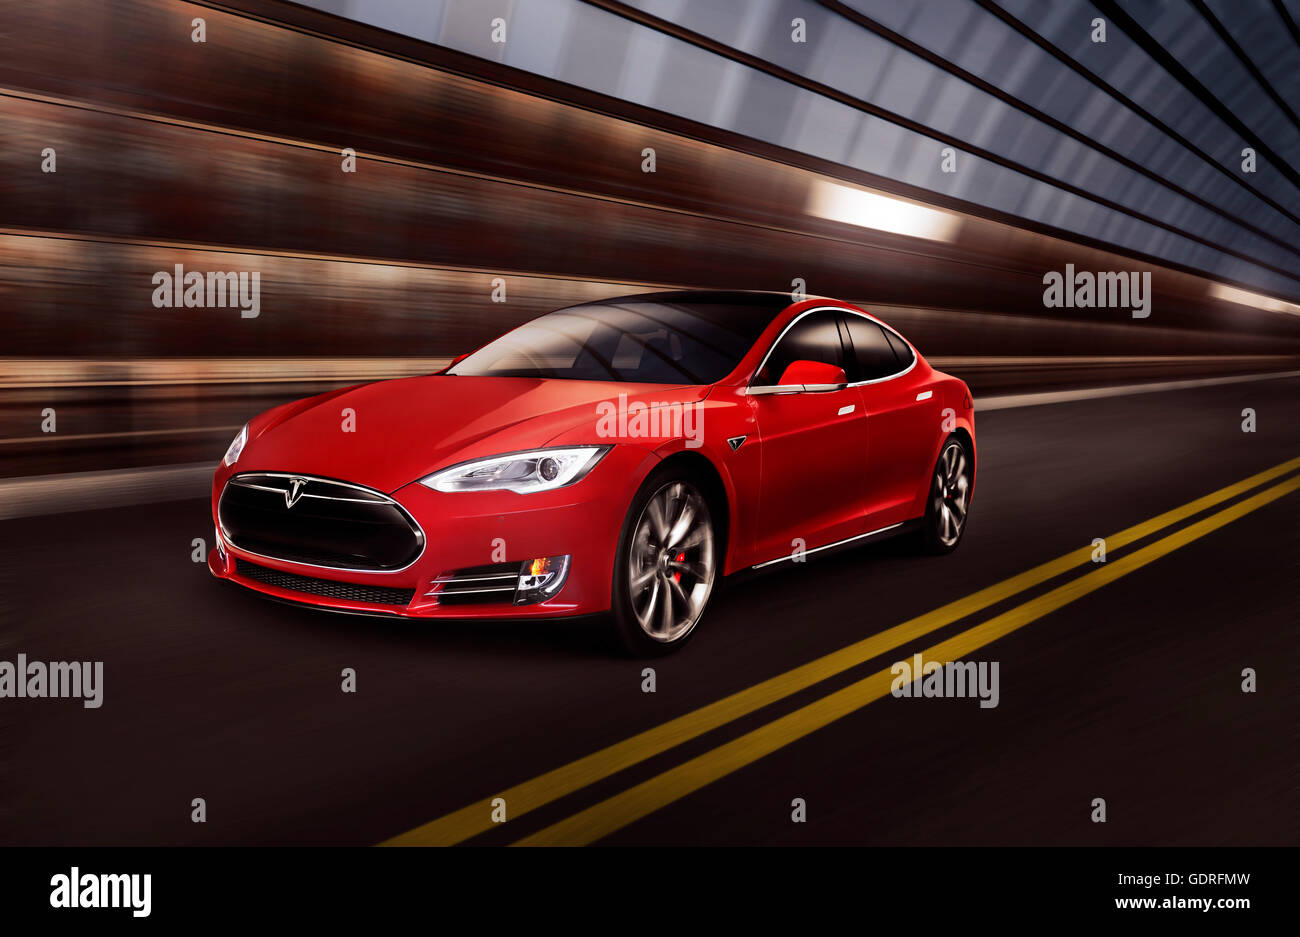 Tesla Model S rouge voiture électrique de luxe l'accélération le long d'un tunnel industriels Photo Stock